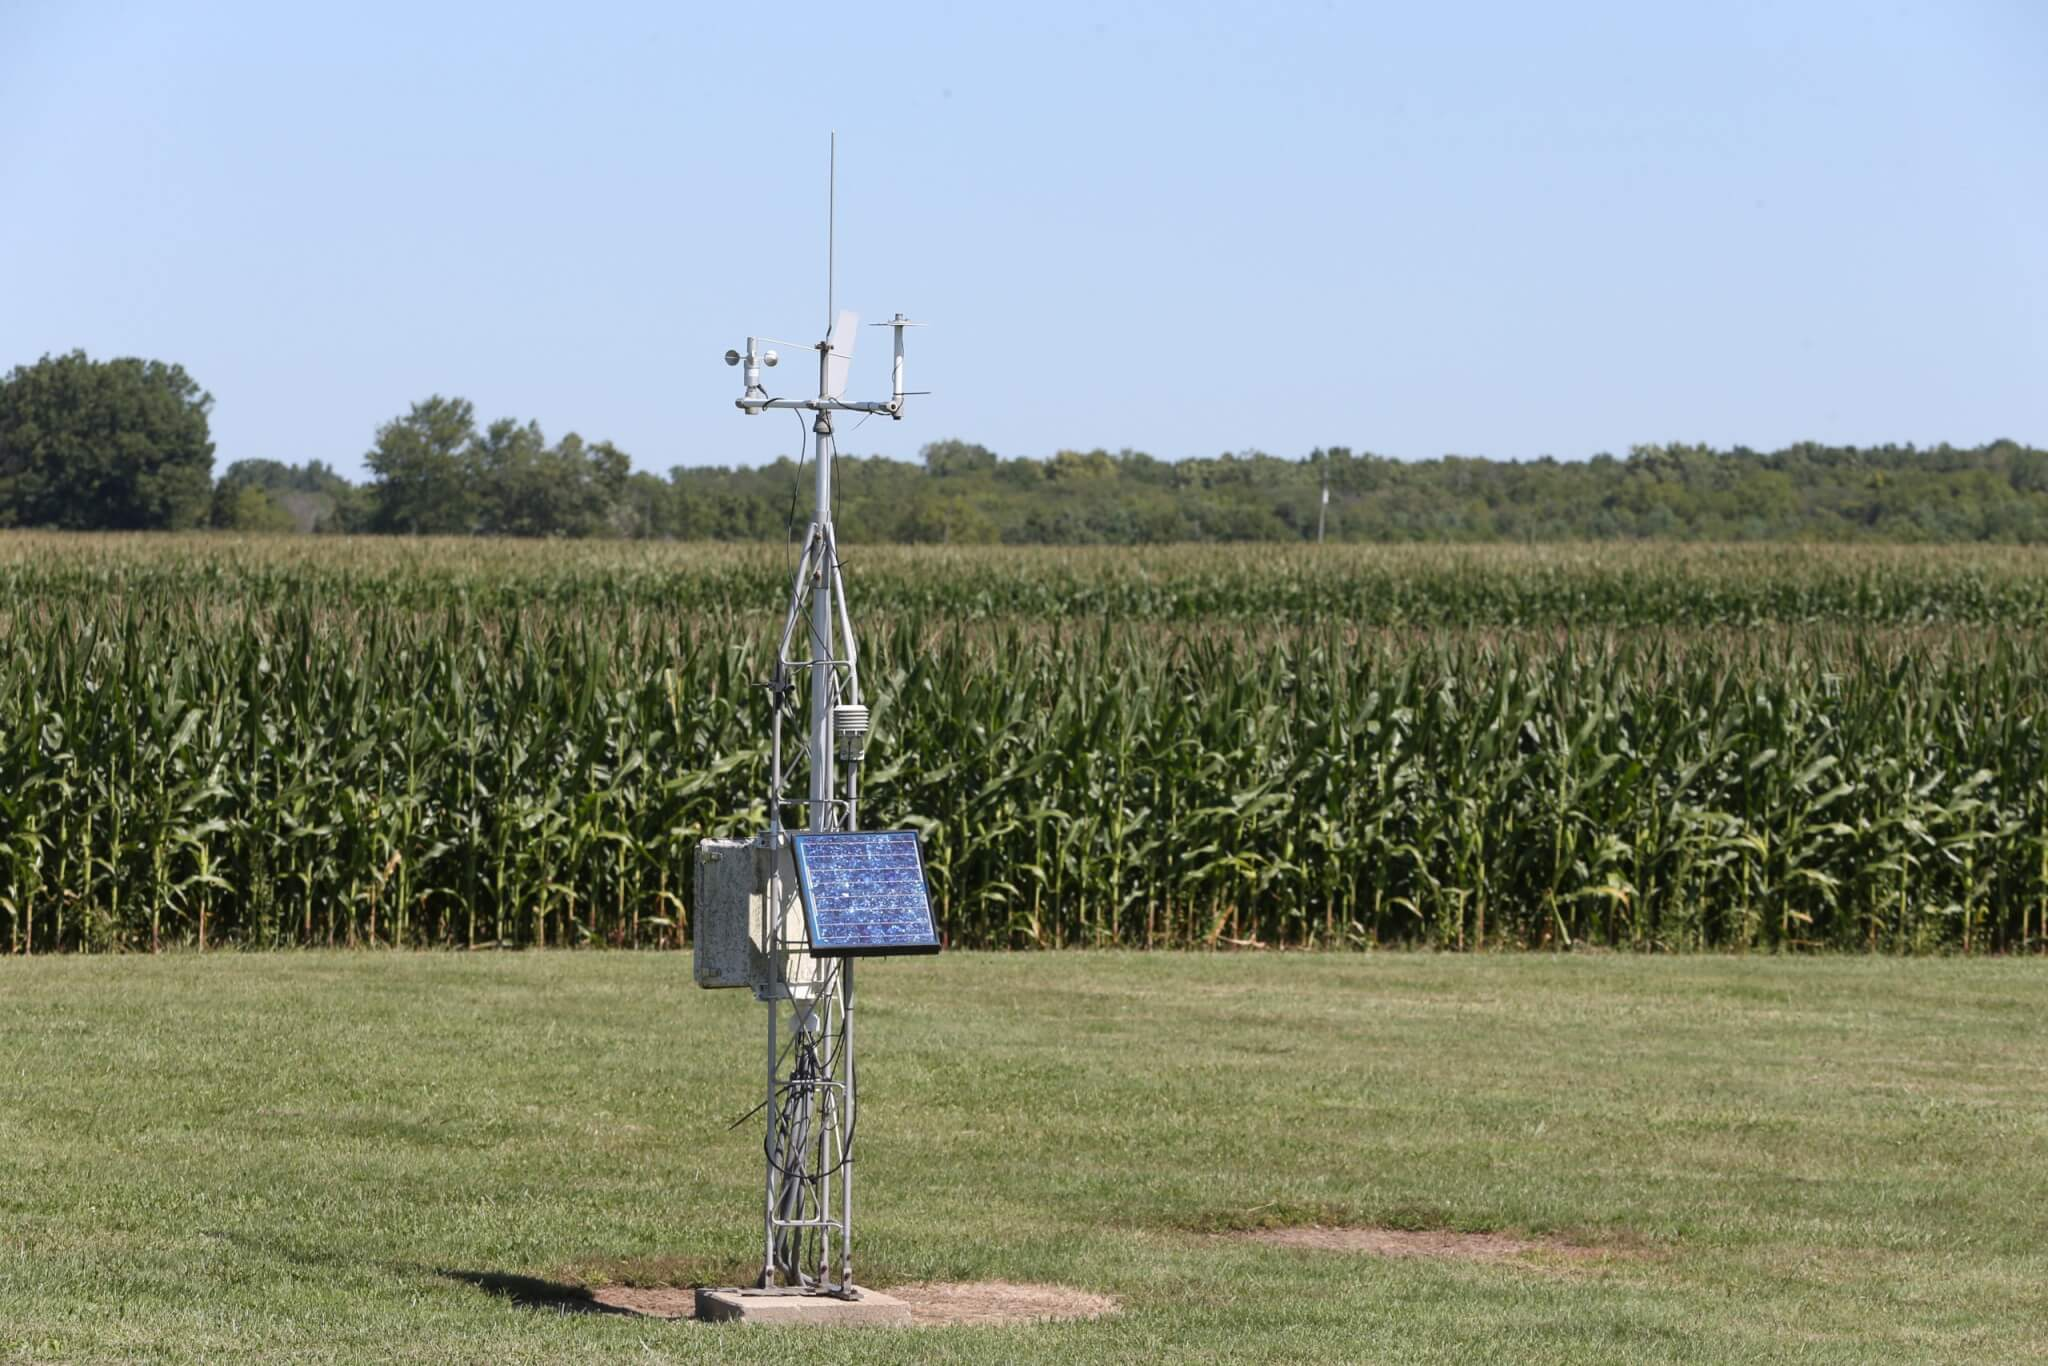 Weather station at the Davis Purdue Agricultural Center